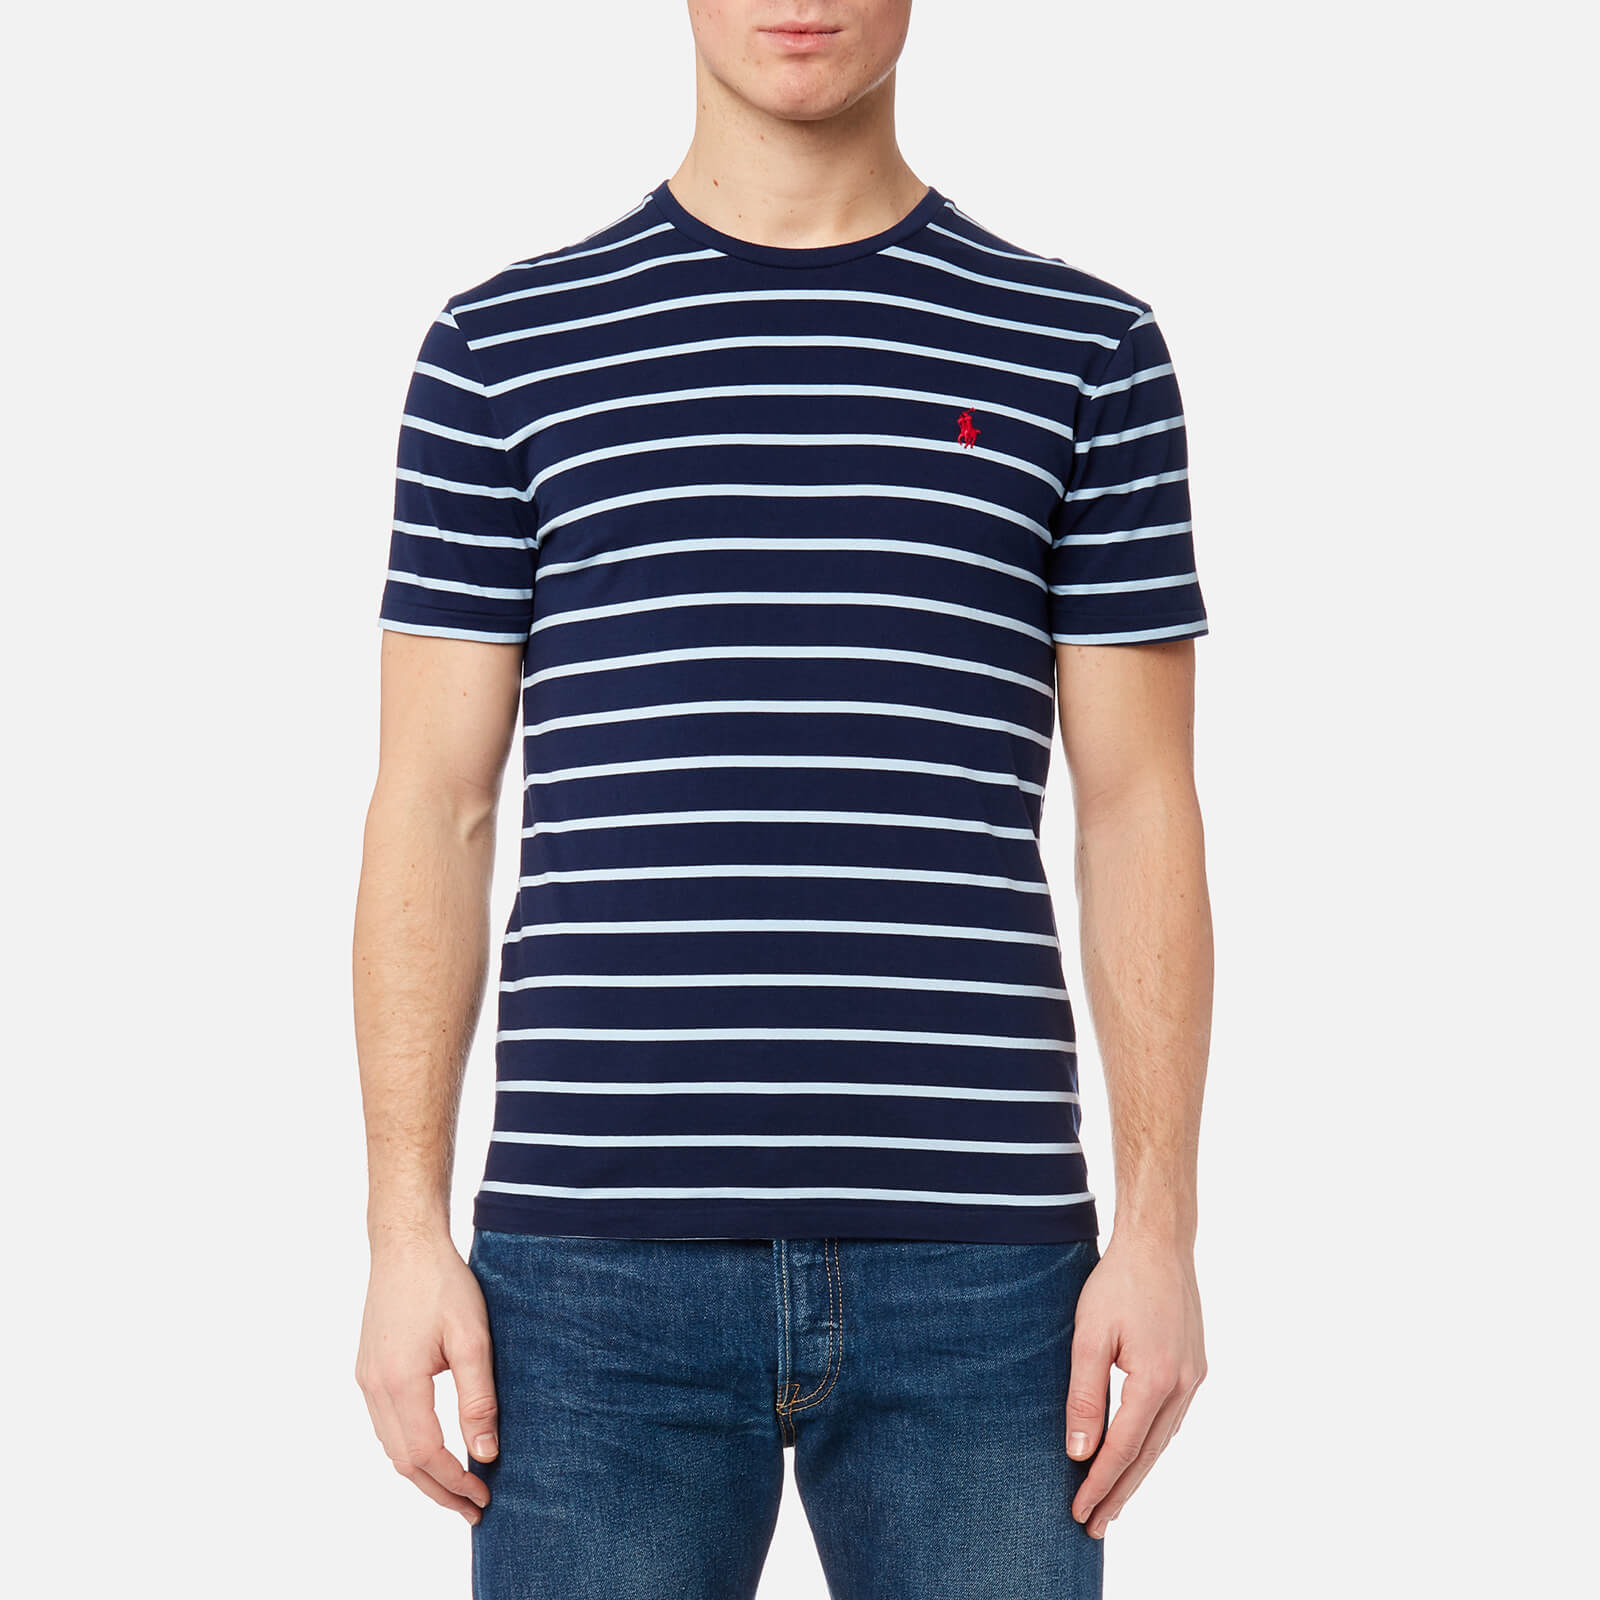 f0697065 Polo Ralph Lauren Men's Striped Short Sleeve T-Shirt - Newport Navy/Elite  Blue - Free UK Delivery over £50